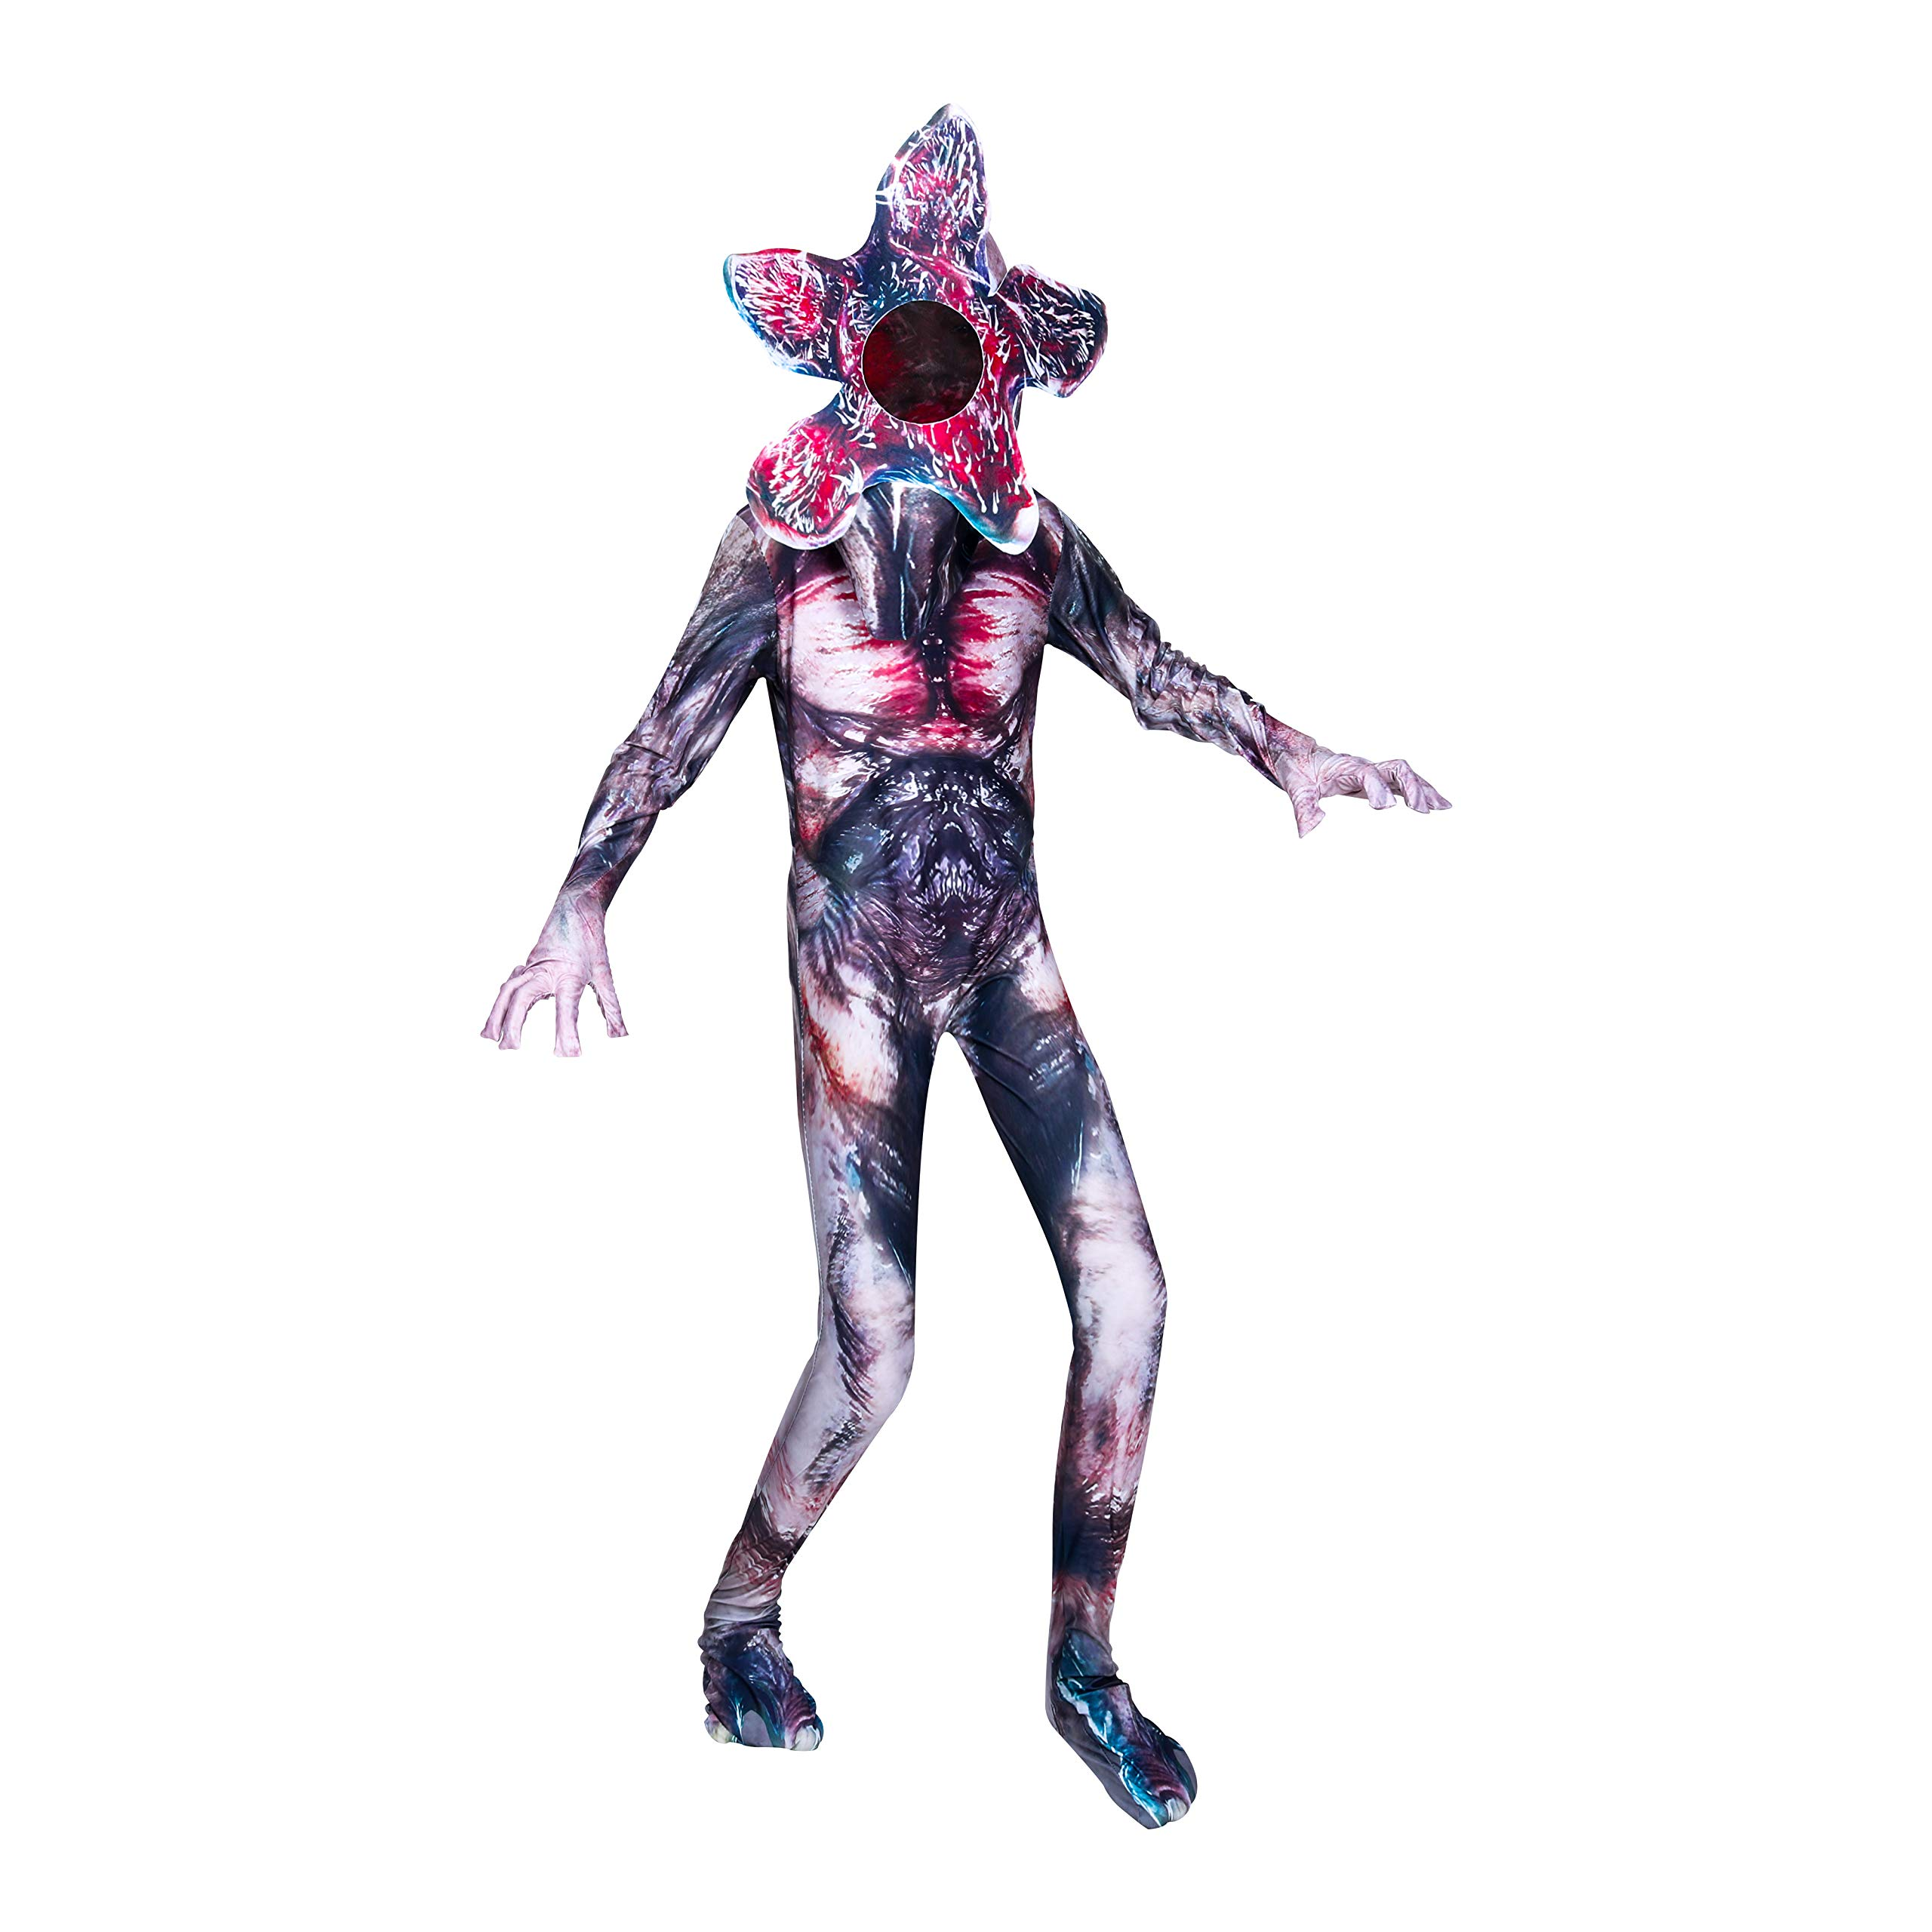 Lqsz Halloween Christmas Stranger Things Demogorgon Cosplay Costume Season 3 Bodysuit Jumpsuit With Mask For Adult Kids Buy Online In Gambia Missing Category Value Products In Gambia See Prices